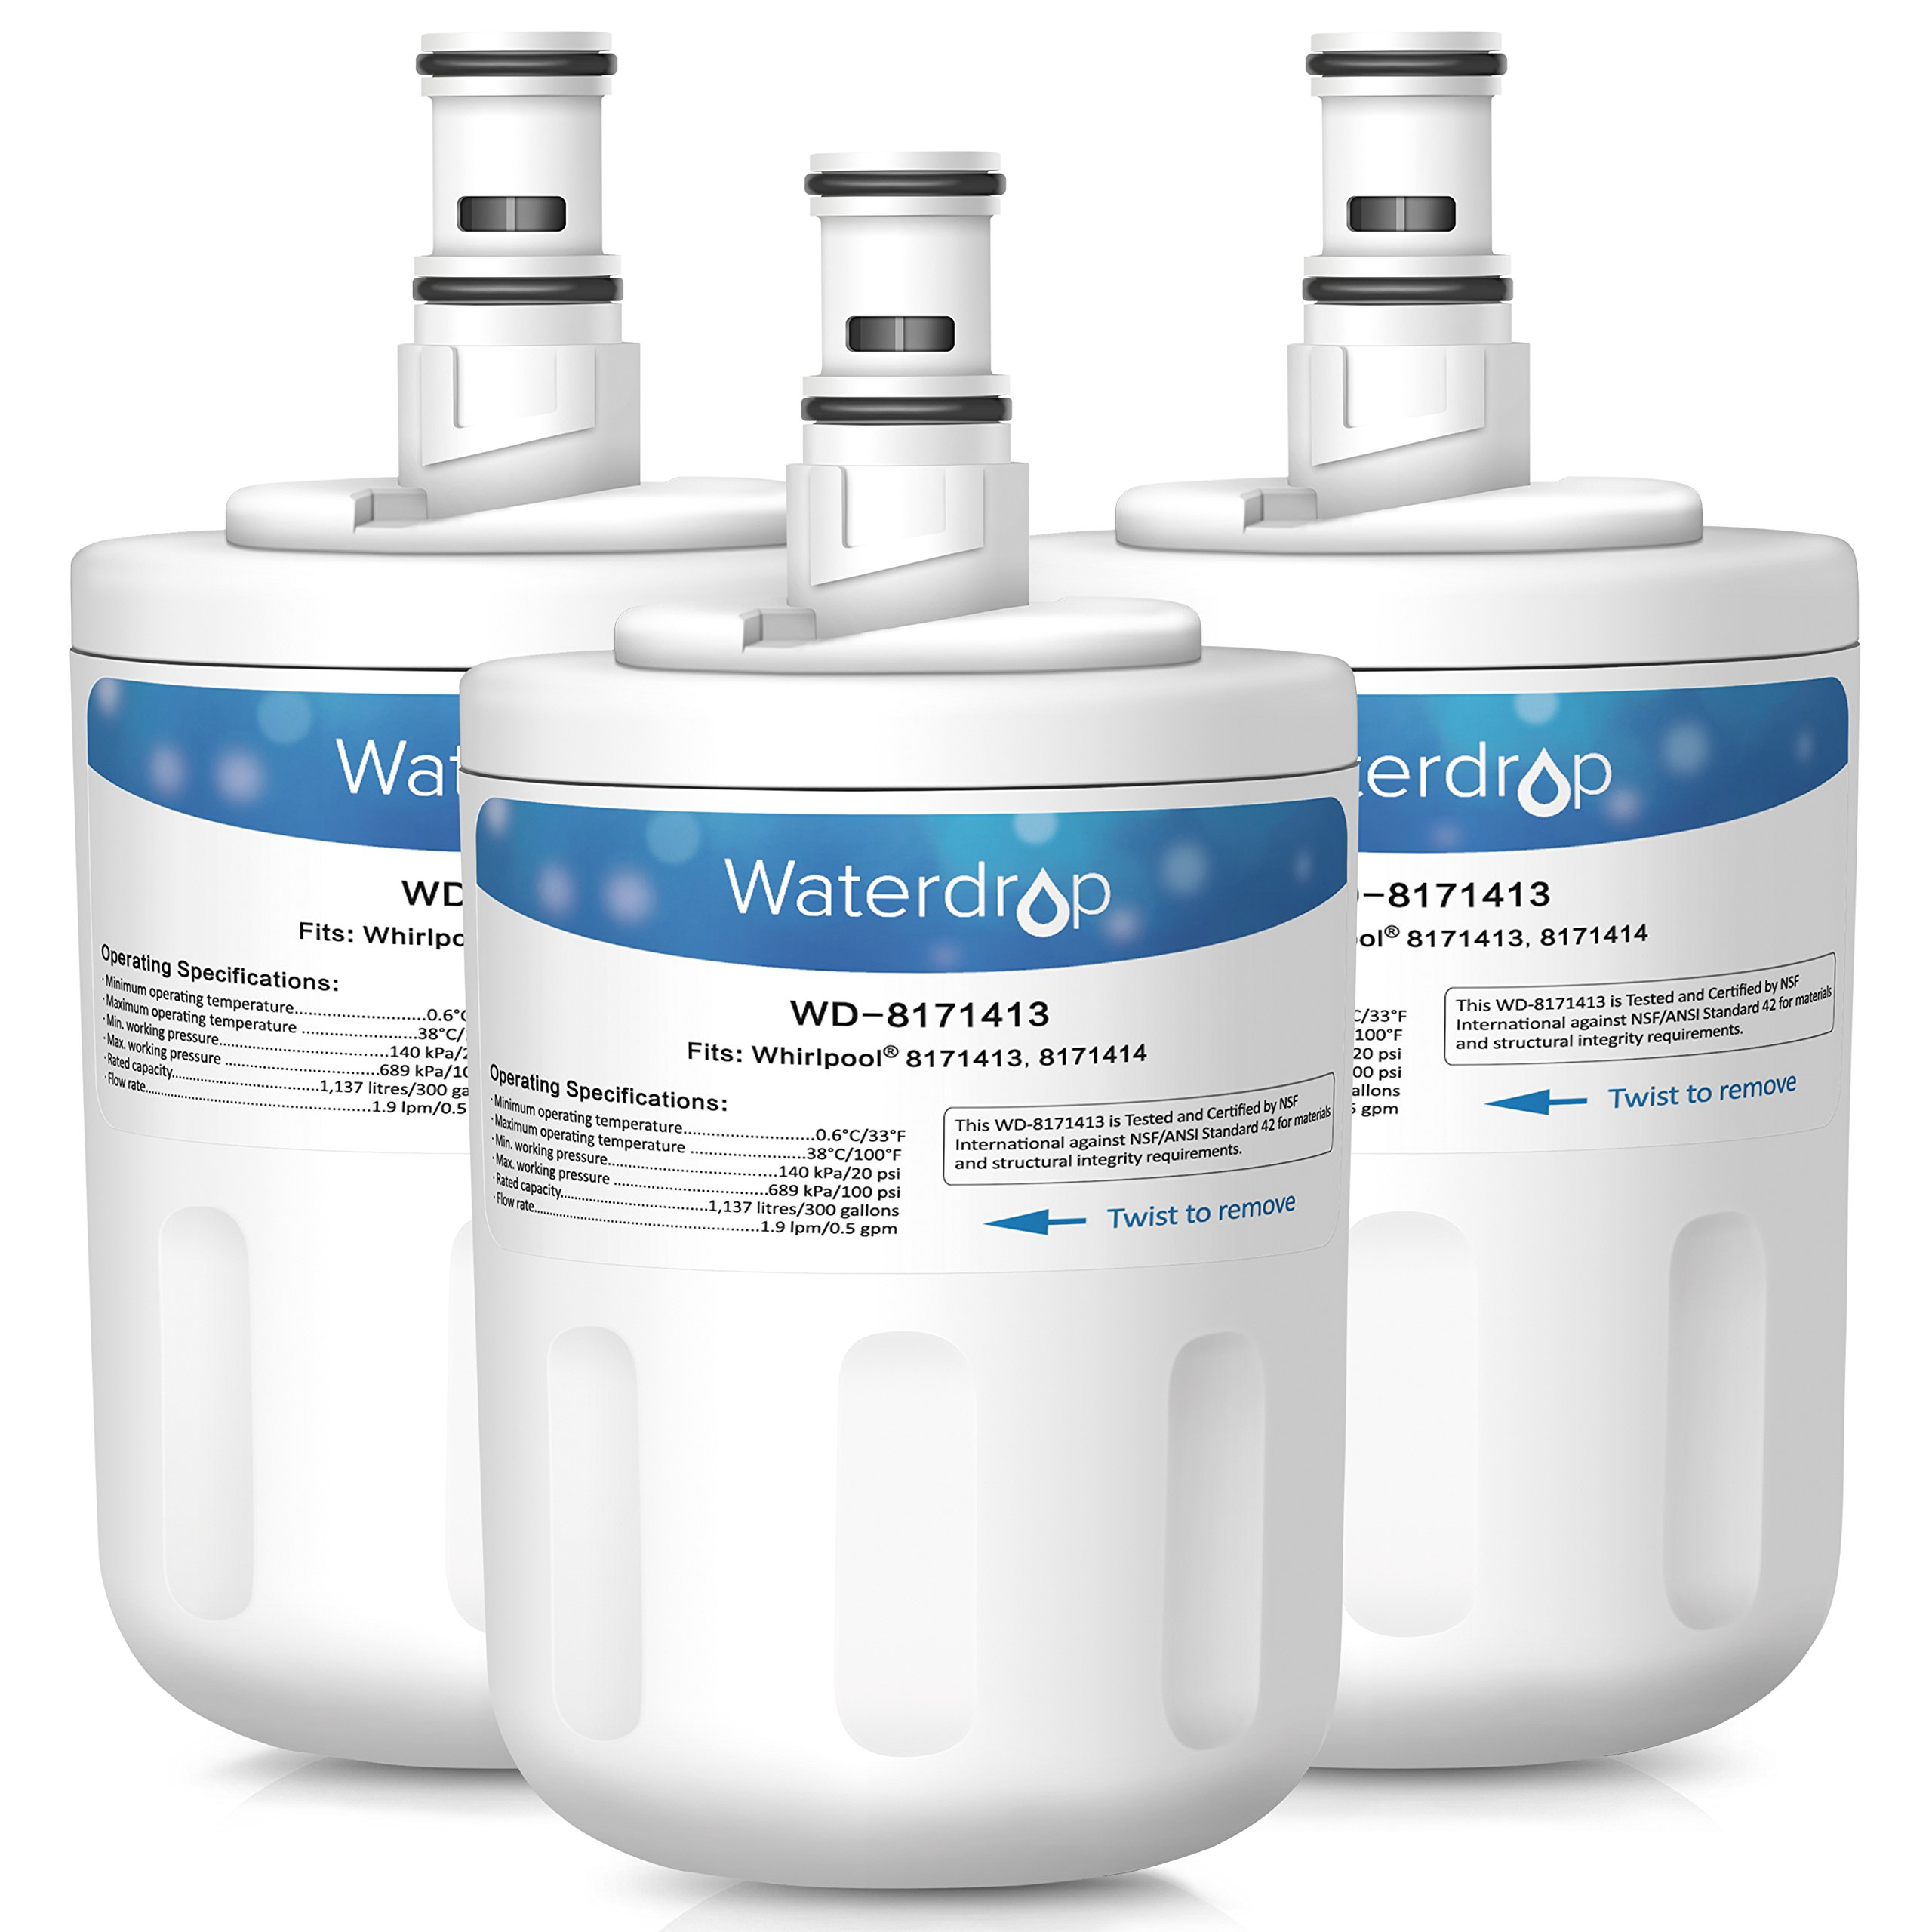 Waterdrop 8171413 Replacement Refrigerator Water Filter, Compatible with Whirlpool 8171413, 8171414, EDR8D1, Kenmore 46-9002 (3 Pack)